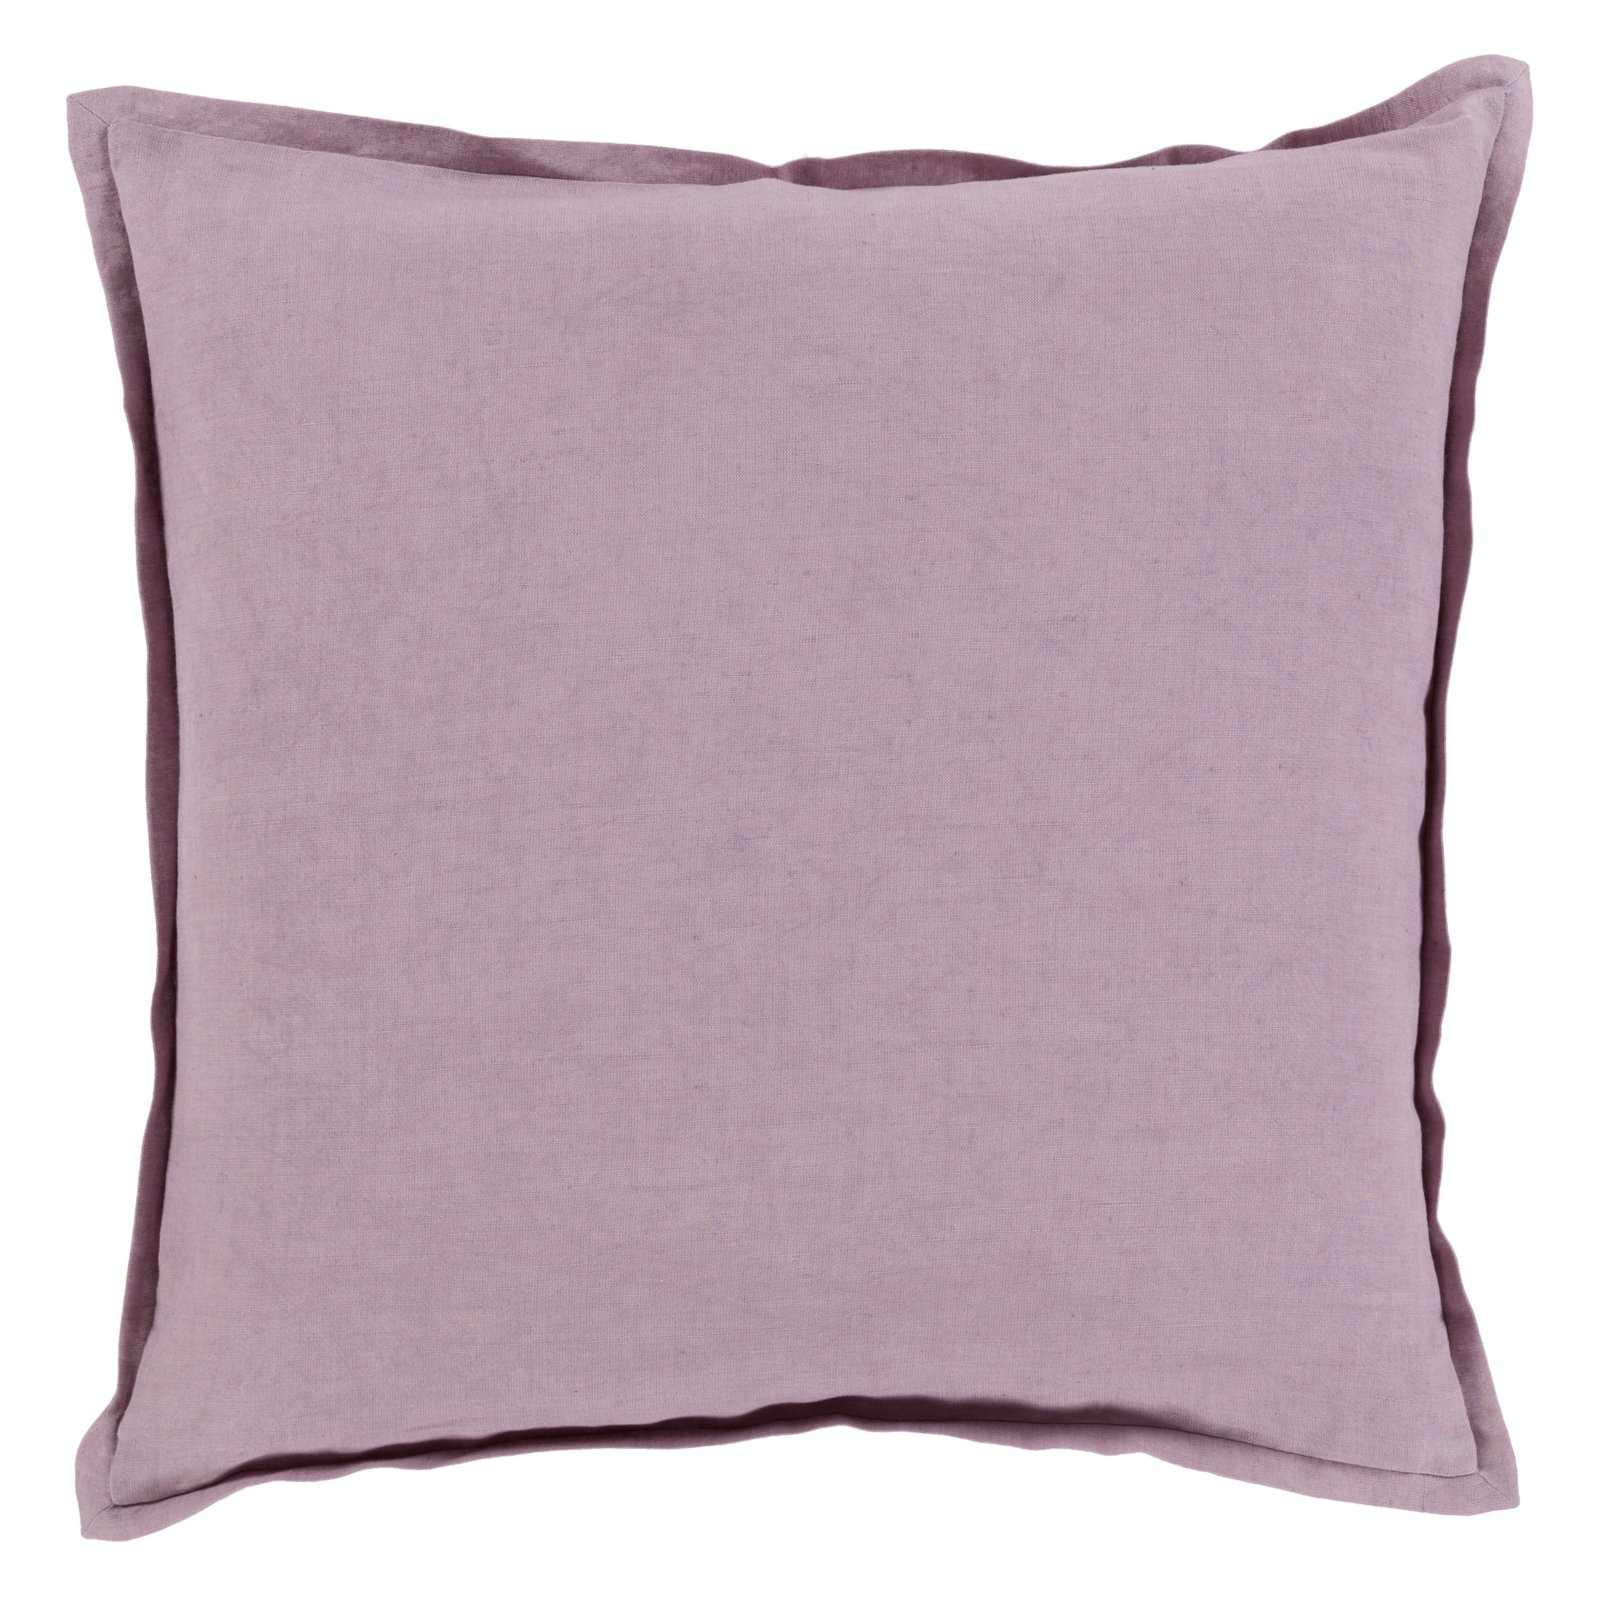 Surya Orianna Decorative Pillow